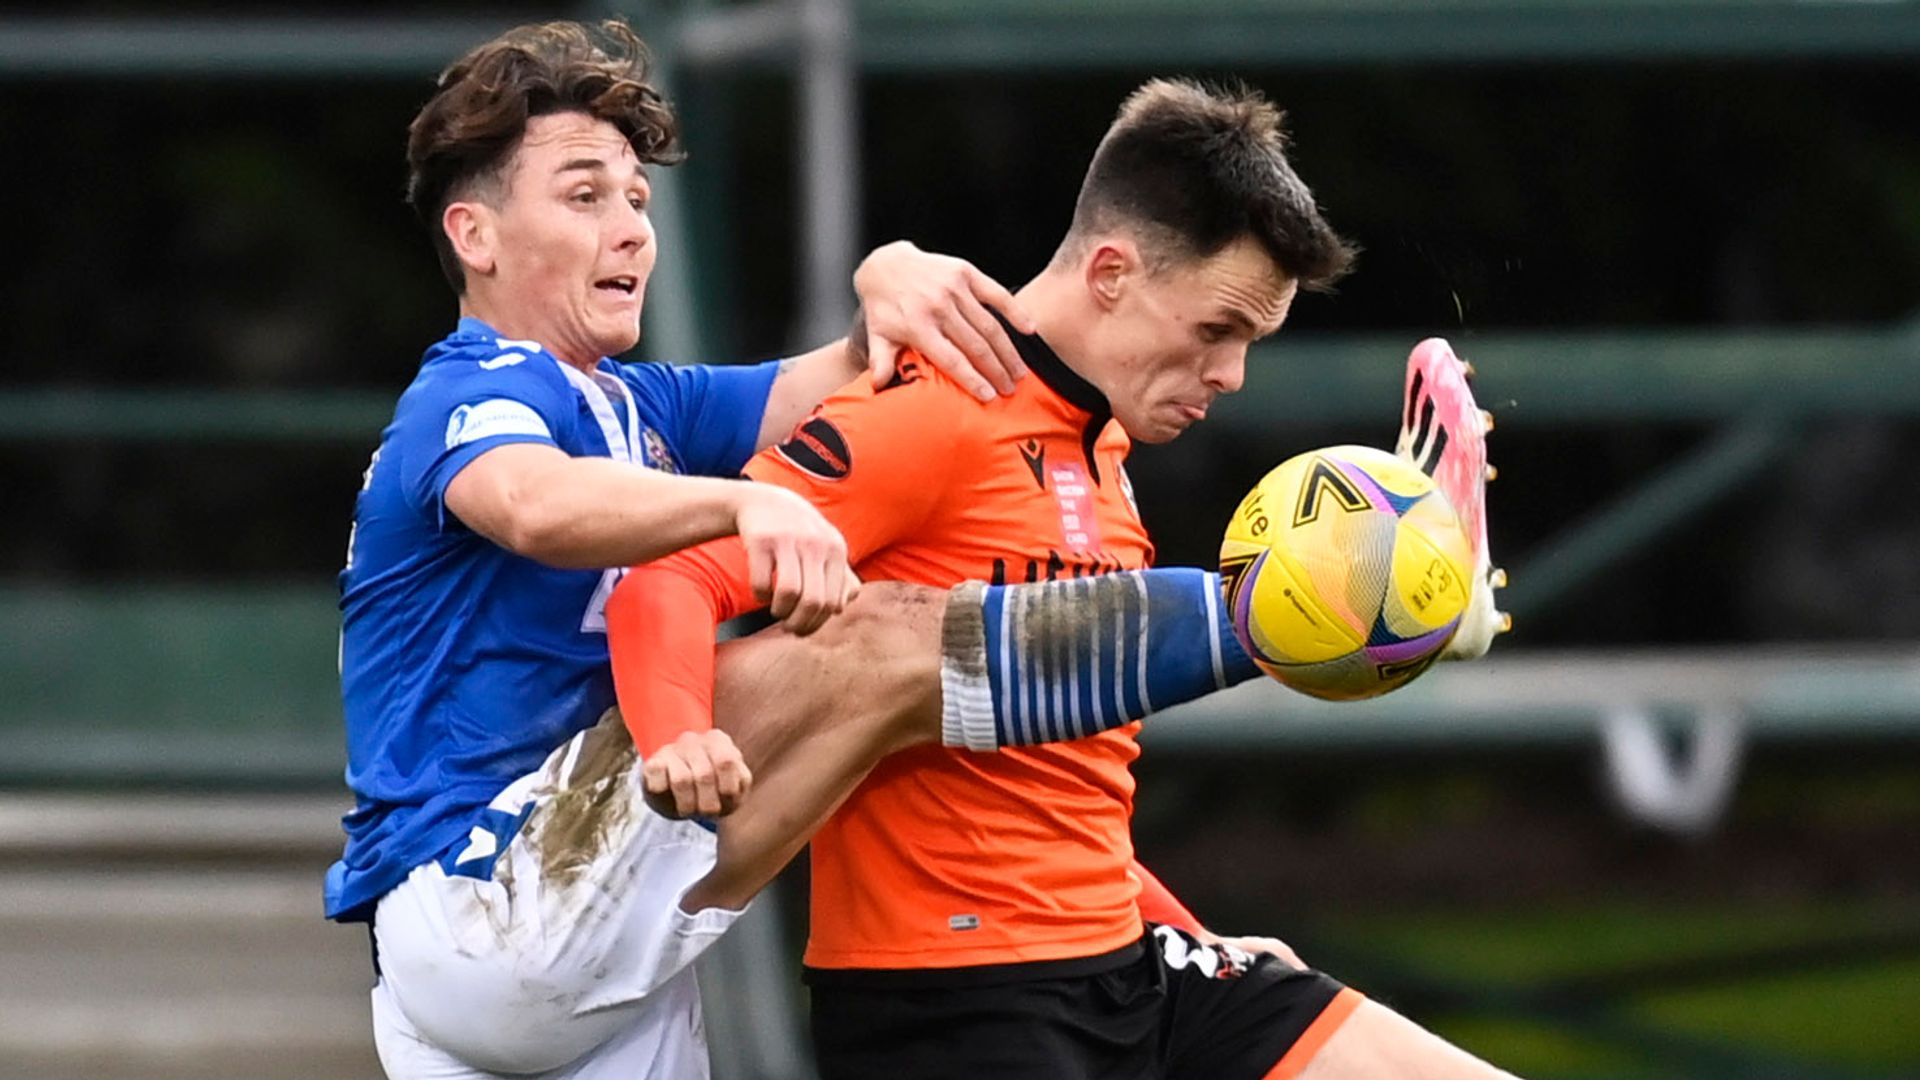 Dundee United vs St Johnstone preview